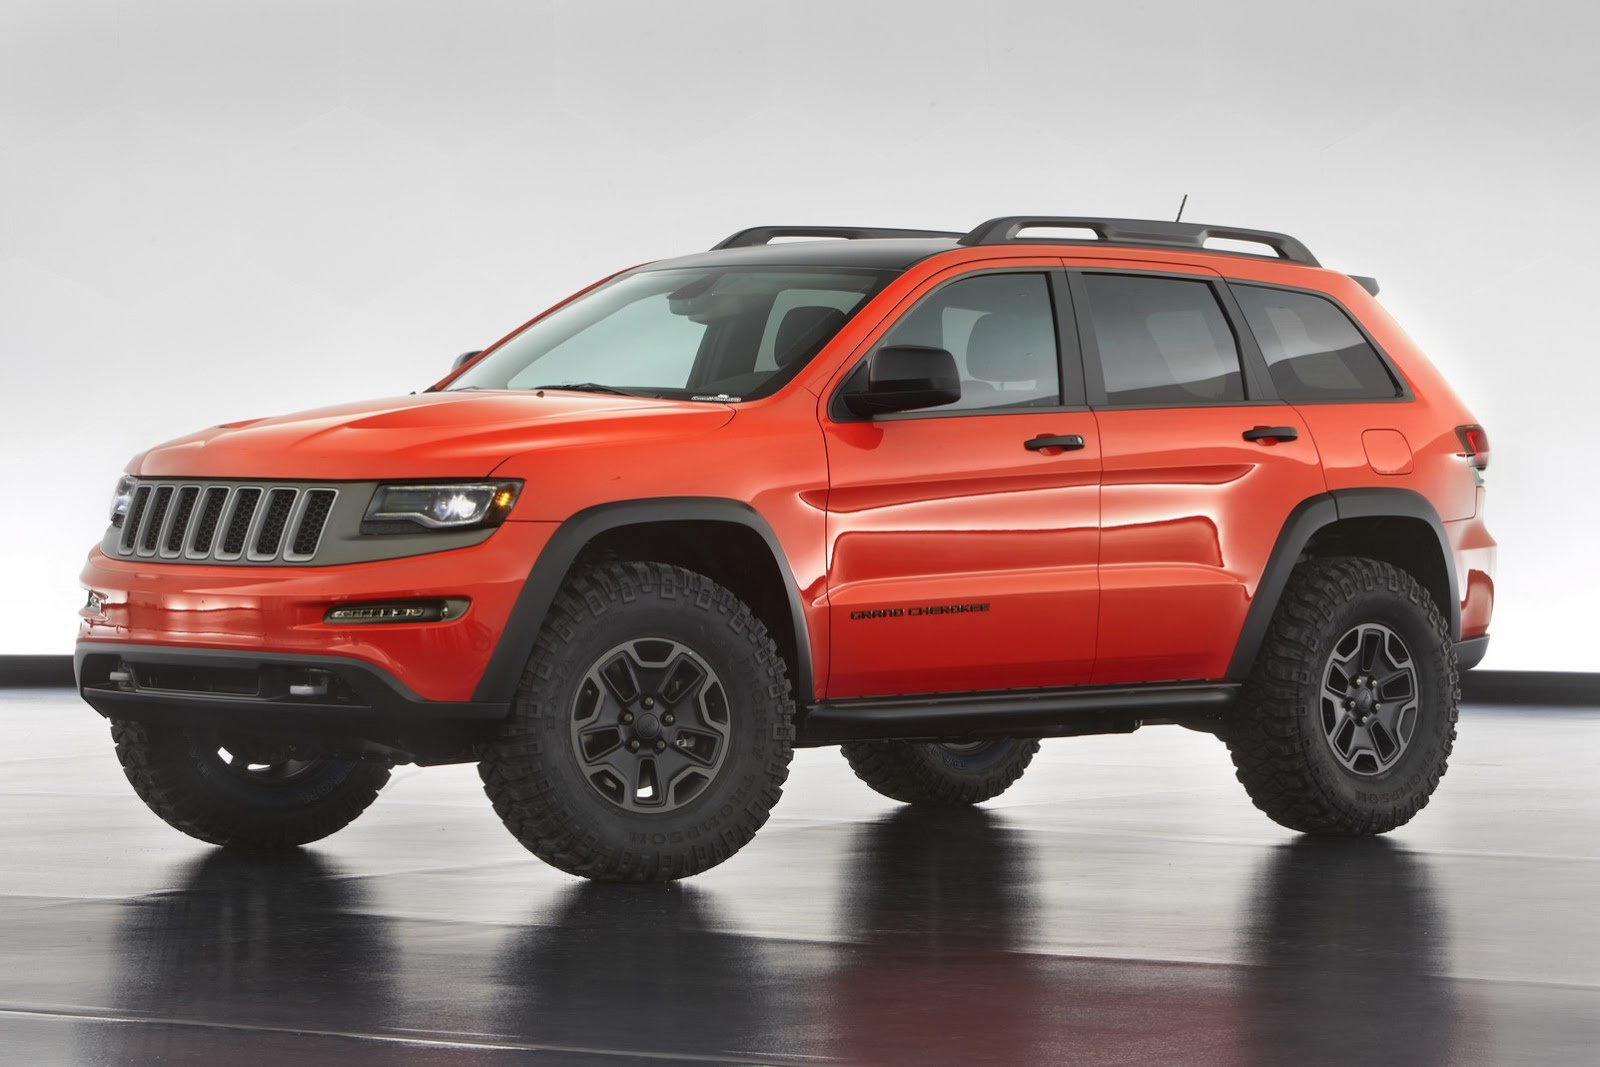 21 best grand cherokee images on pinterest 2014 jeep grand cherokee vehicles and jeep grand cherokee